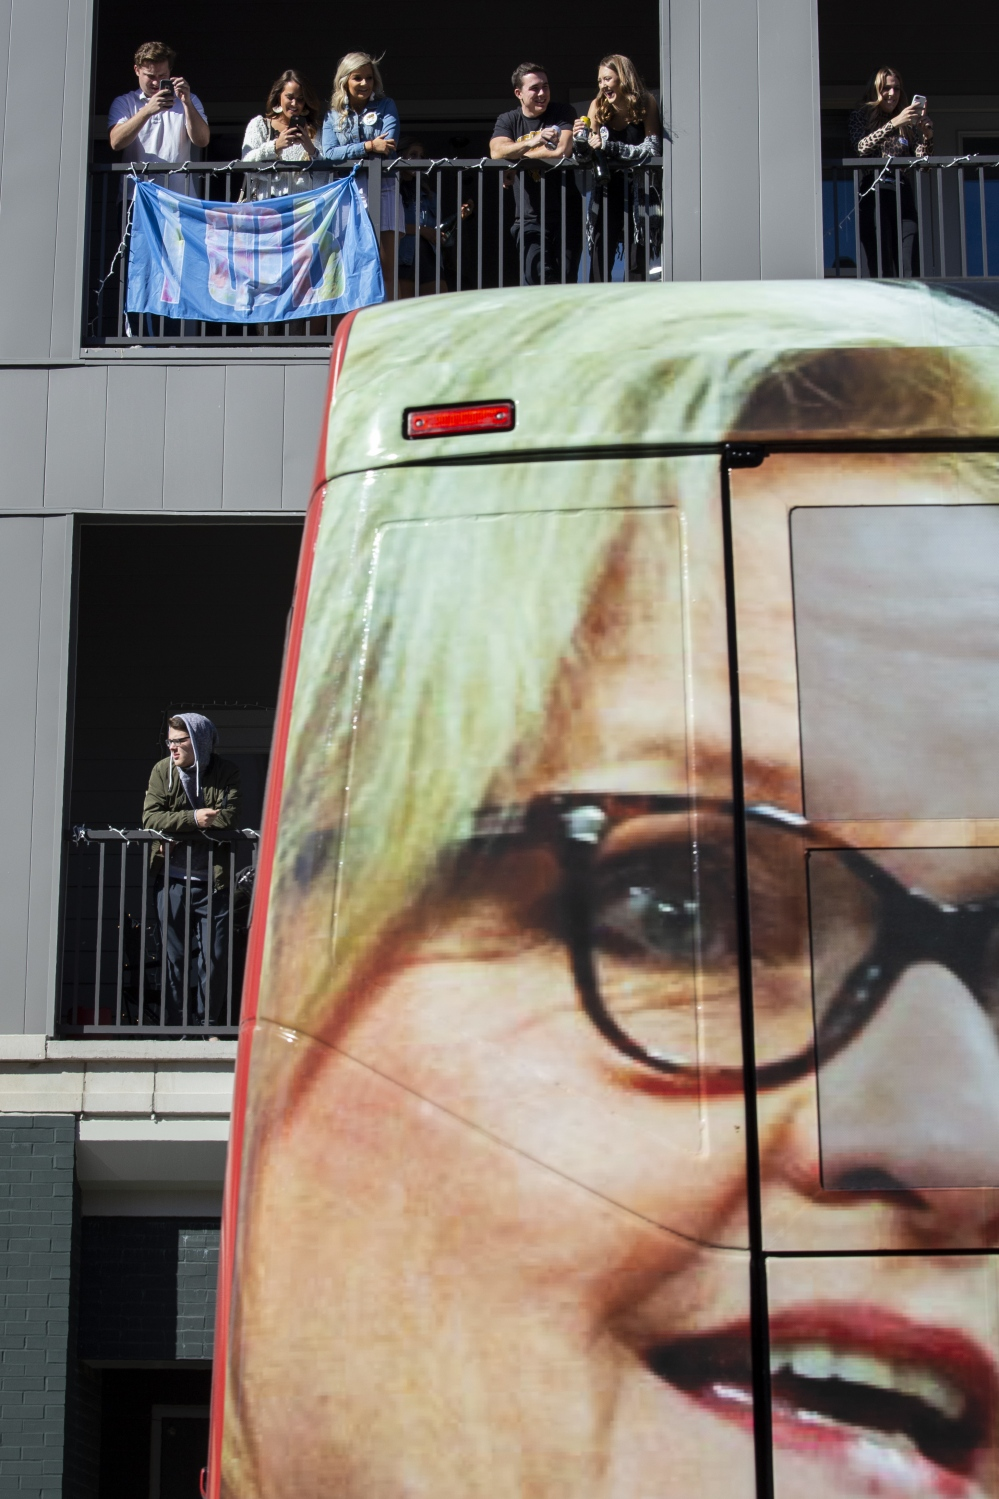 U.S. Senate candidate Josh Hawley's campaign bus drives by spectators at the University of Missouri homecoming parade downtown Columbia, Mo. on Saturday, Oct. 20, 2018. Hawley's bus displayed the face of his opponent U.S. Sen. Claire McCaskill, D-Mo.